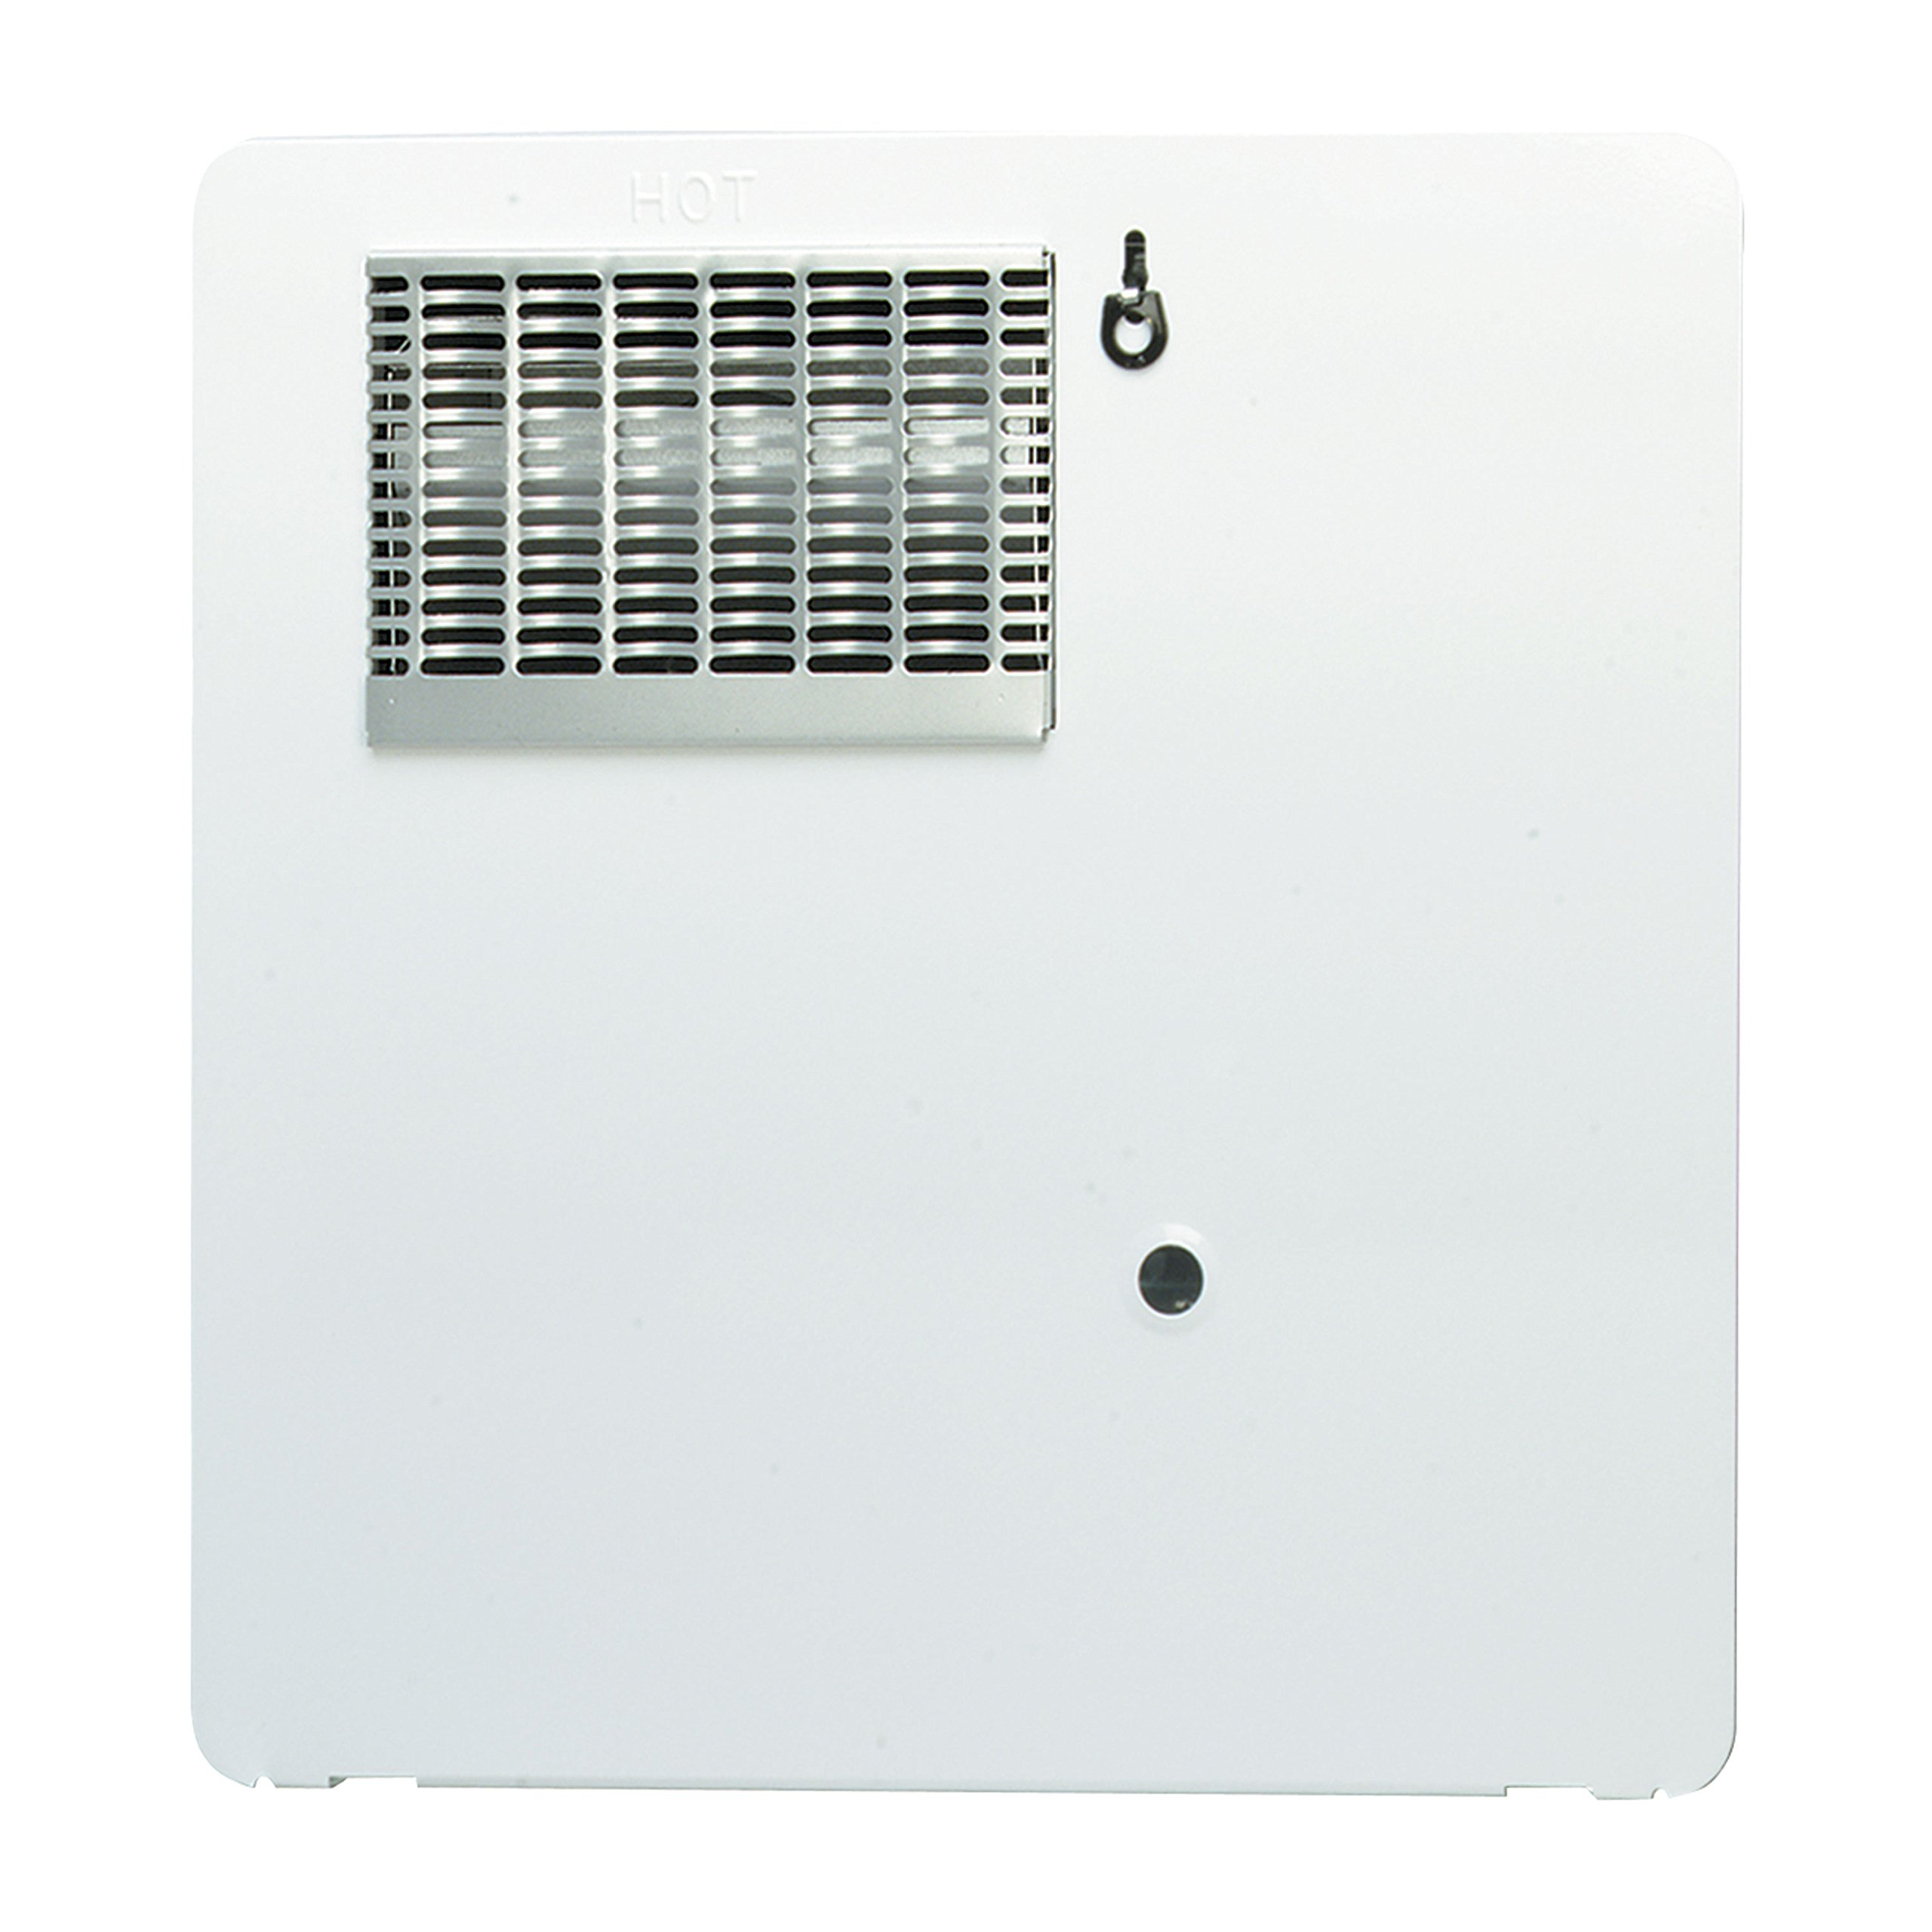 Best Rated In Rv Water Heaters Helpful Customer Reviews Details About Atwood 10 Gallon Heater Circuit Board At91522 White Door Assembly Product Image